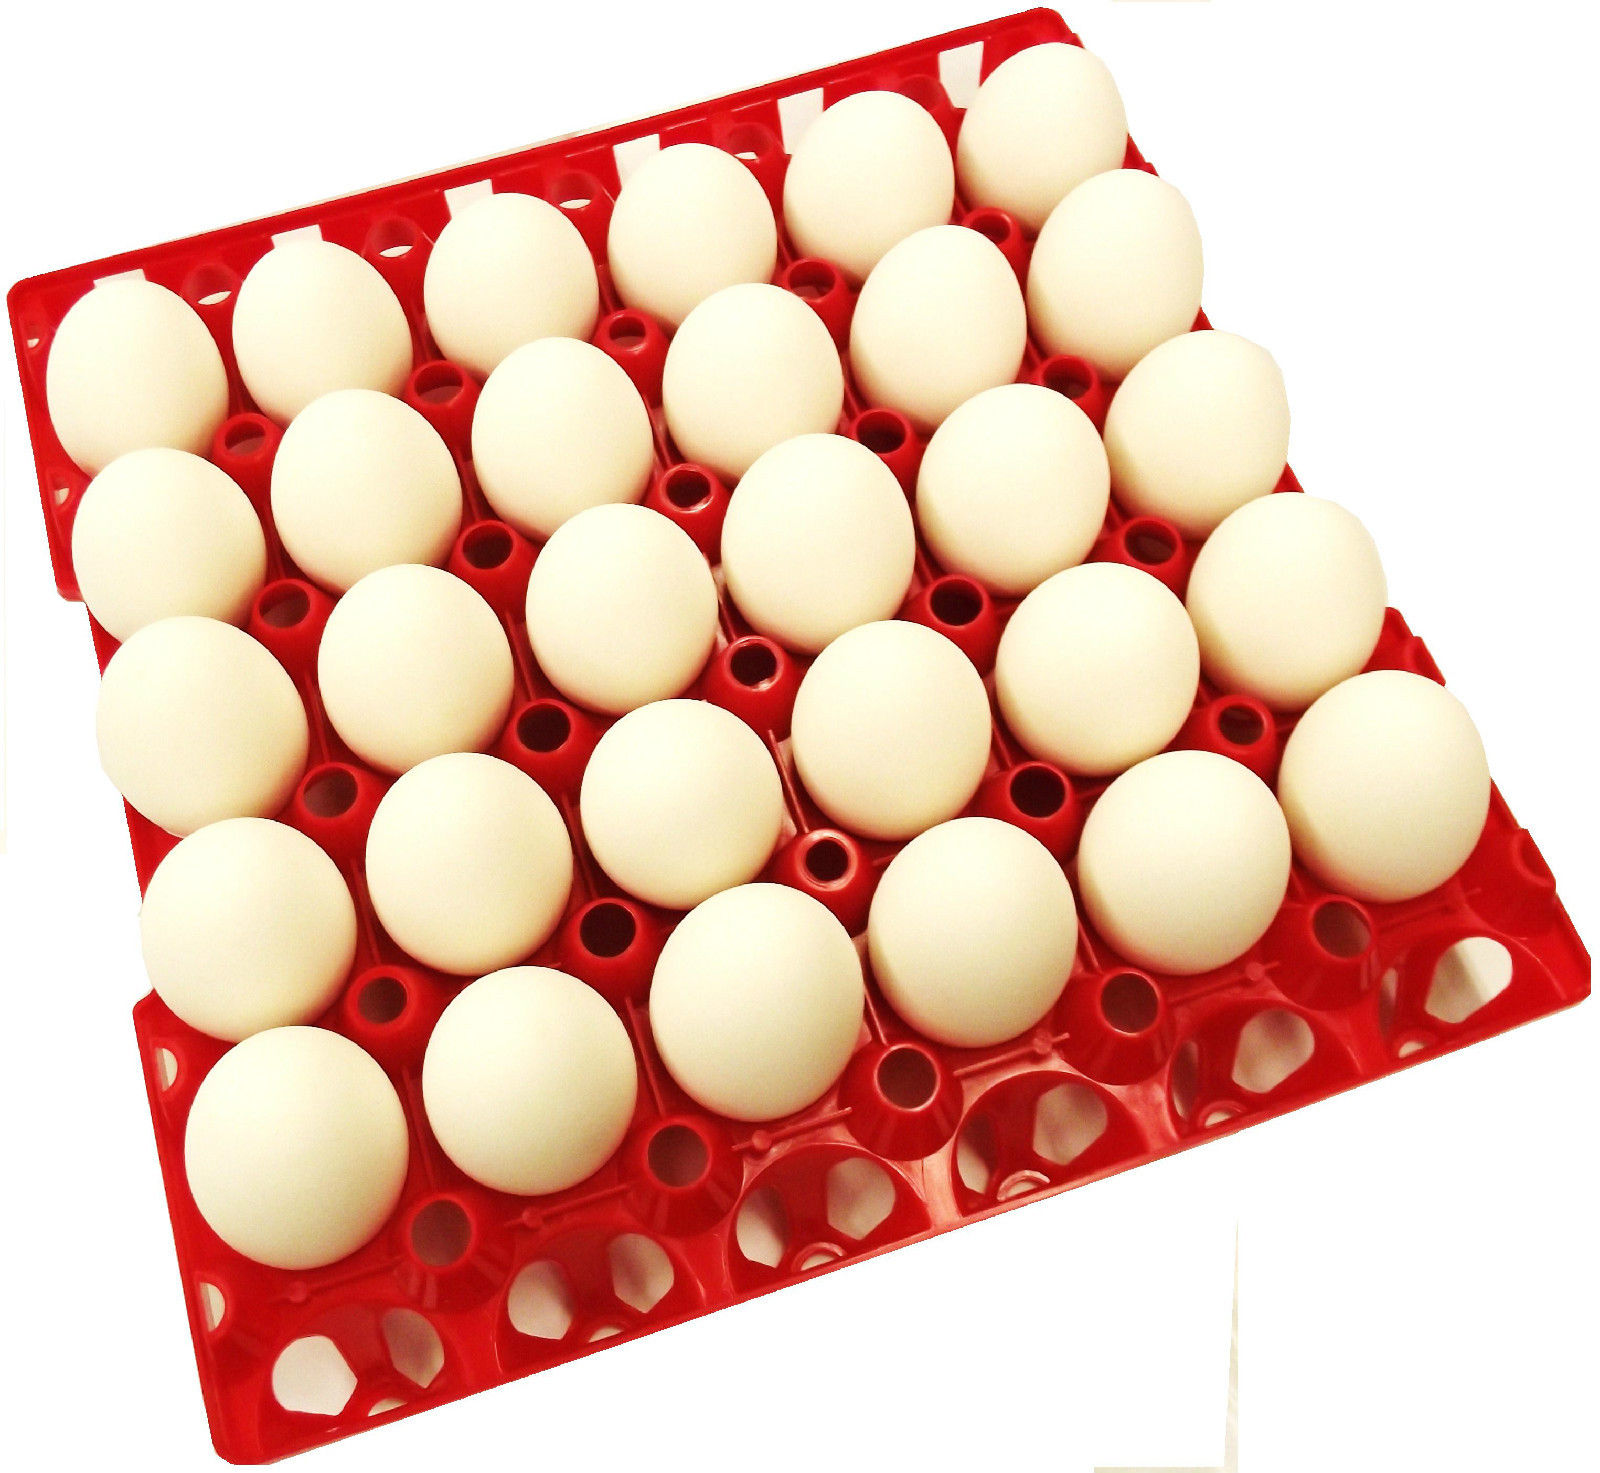 48 RITE FARM PRODUCTS 30 EGG POLY CHICKEN TRAYS SHIPPING CARTON POULTRY FLAT